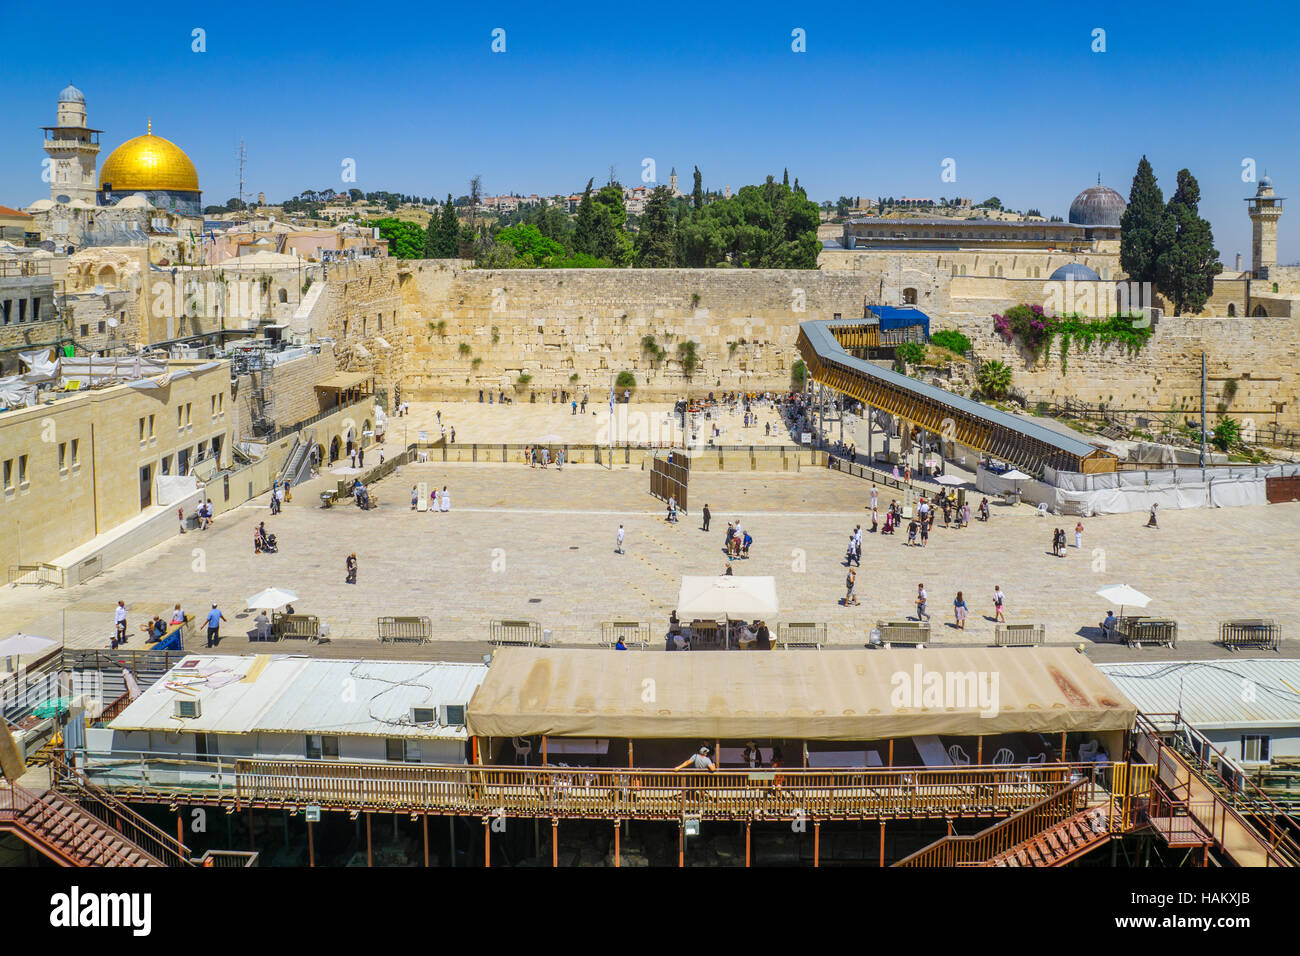 JERUSALEM, ISRAEL - APRIL 29, 2016: View of the western wall (Wailing Wall), Al-Aqsa Mosque and the Dome of the - Stock Image